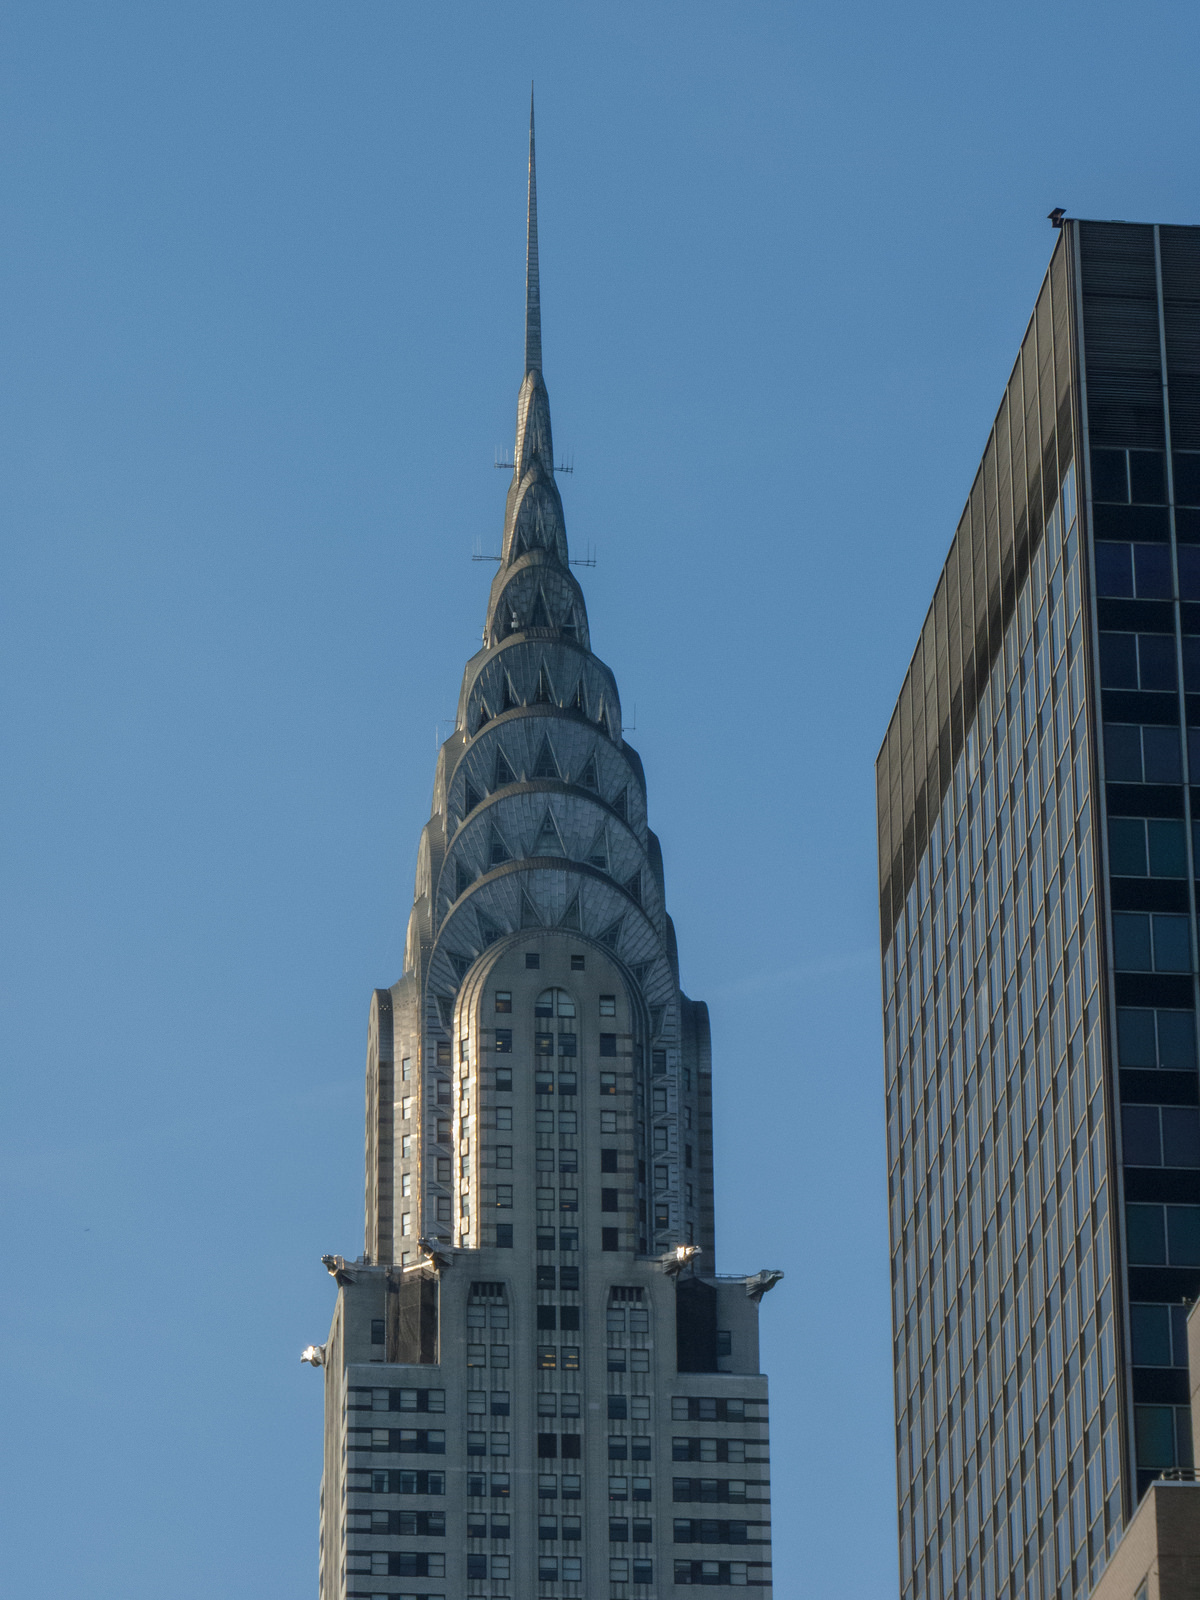 """The Chrysler Building"" by Karl Davison via Flickr Creative Commons"